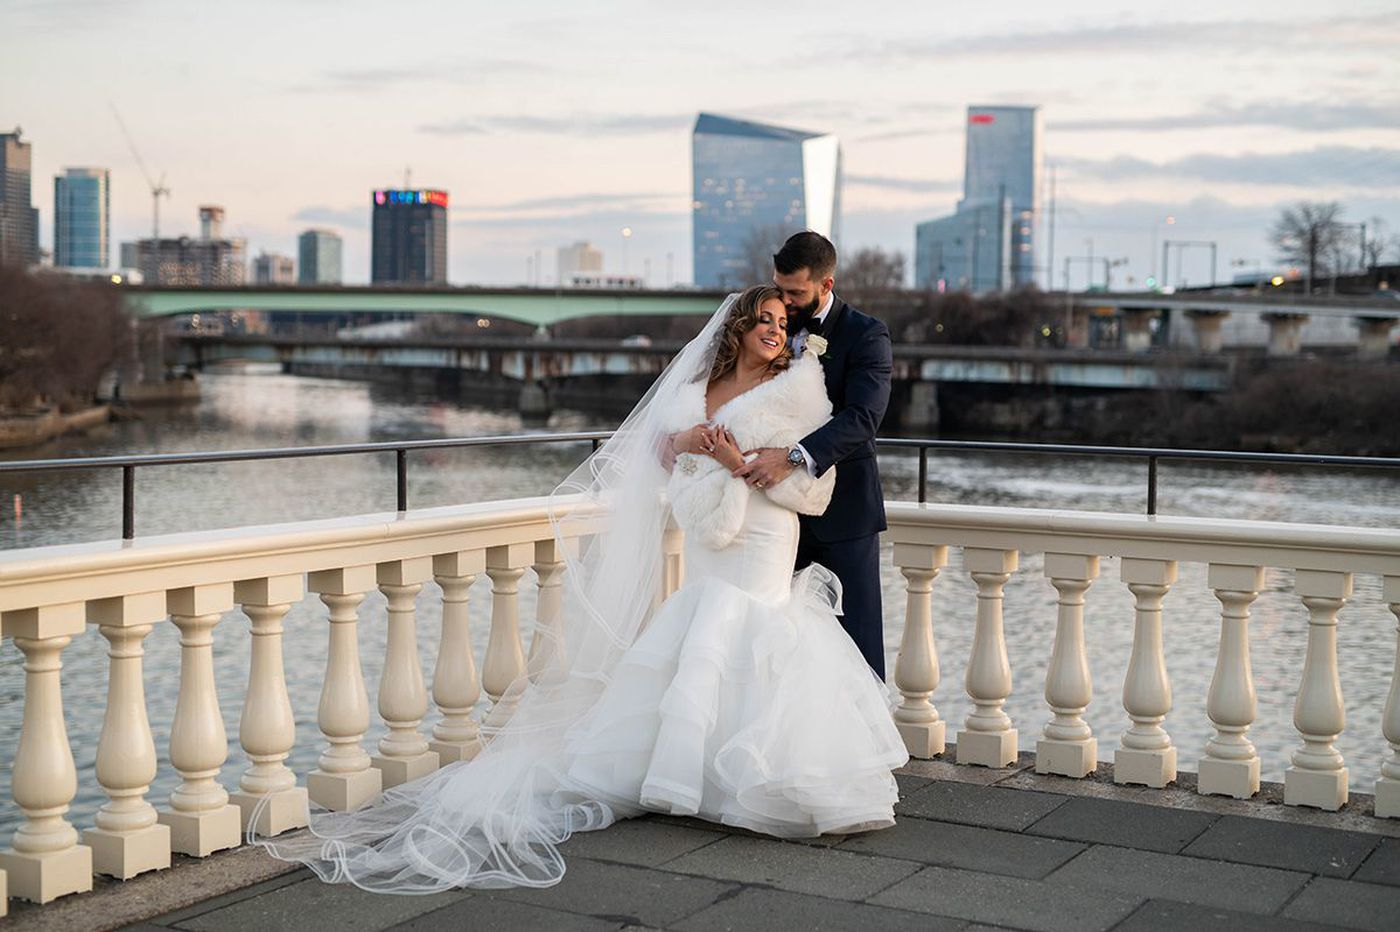 Wedding: Alicia Zanghi and Jeffrey Frederick clicked from the beginning